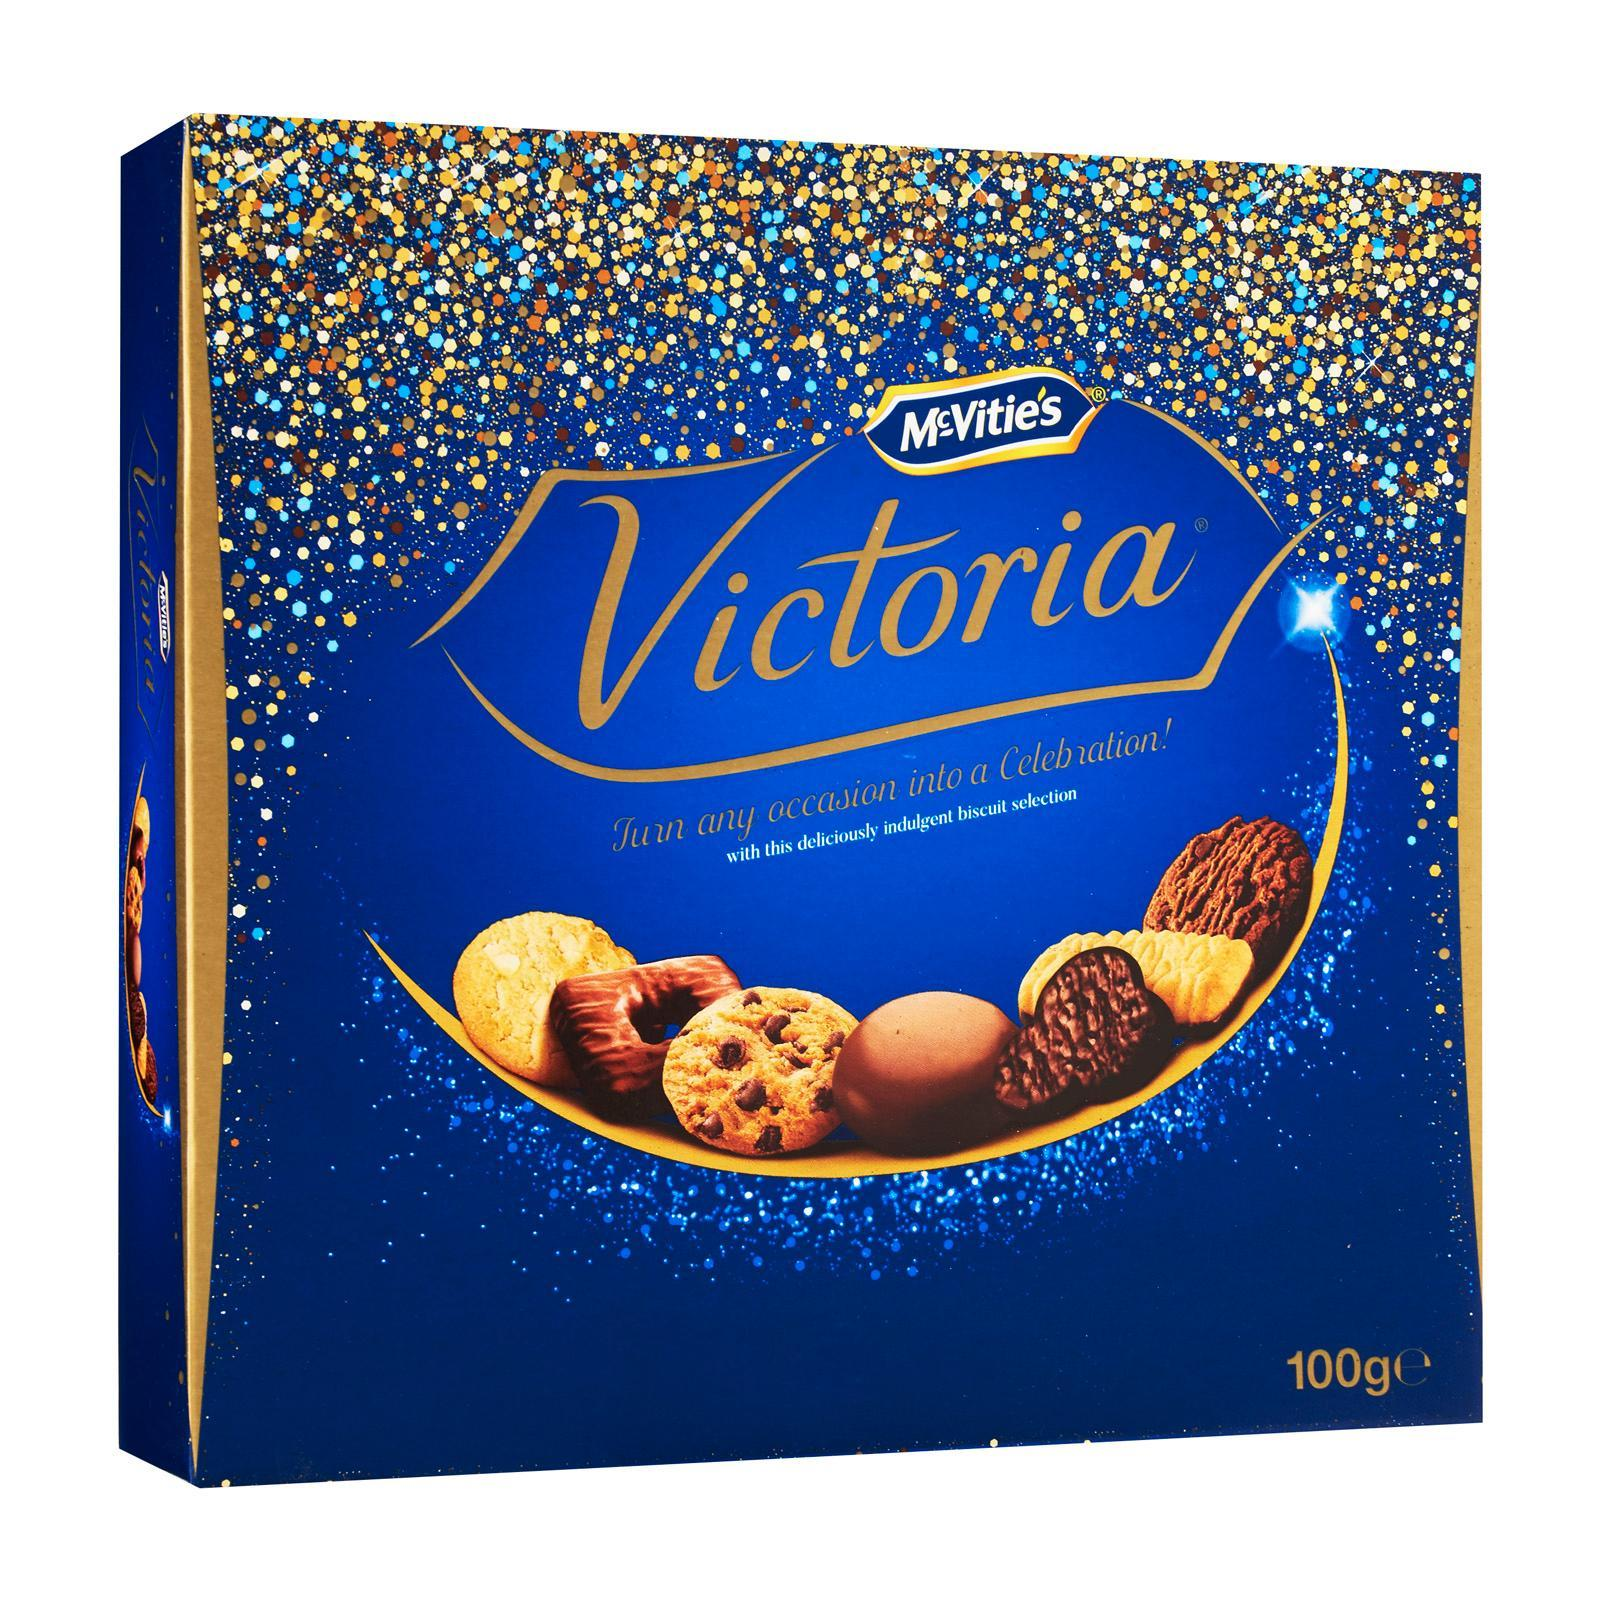 McVitie's Victoria Chocolate Biscuits Collection - Christmas Special